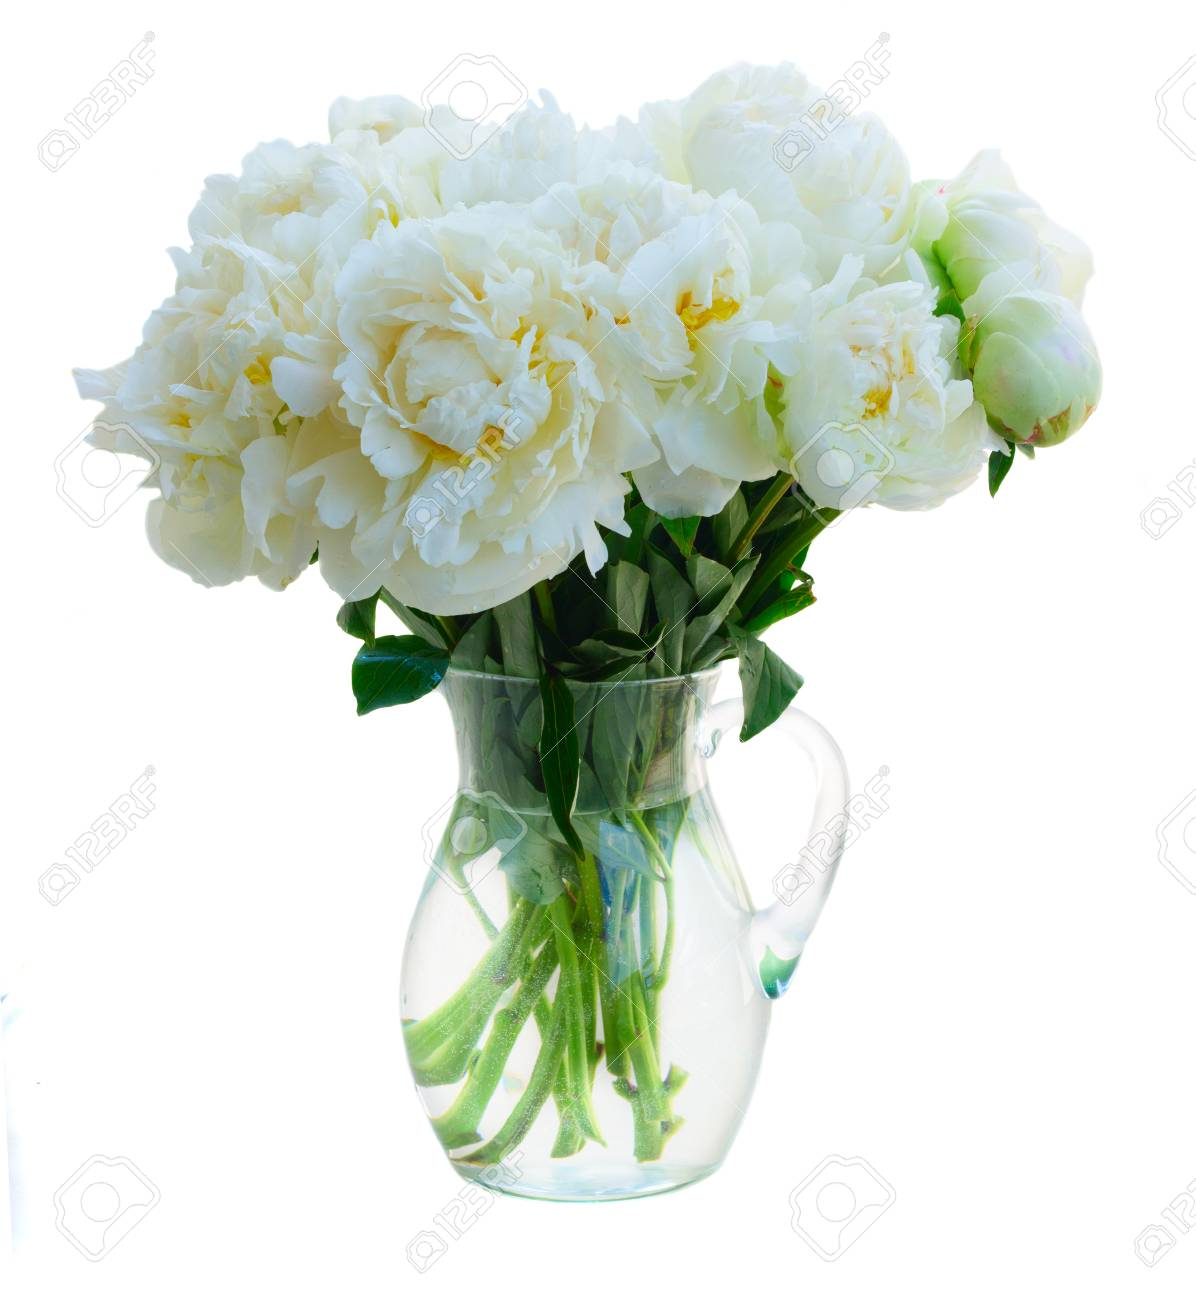 White peony flowers bouquet in vase isolated on white background stock photo white peony flowers bouquet in vase isolated on white background mightylinksfo